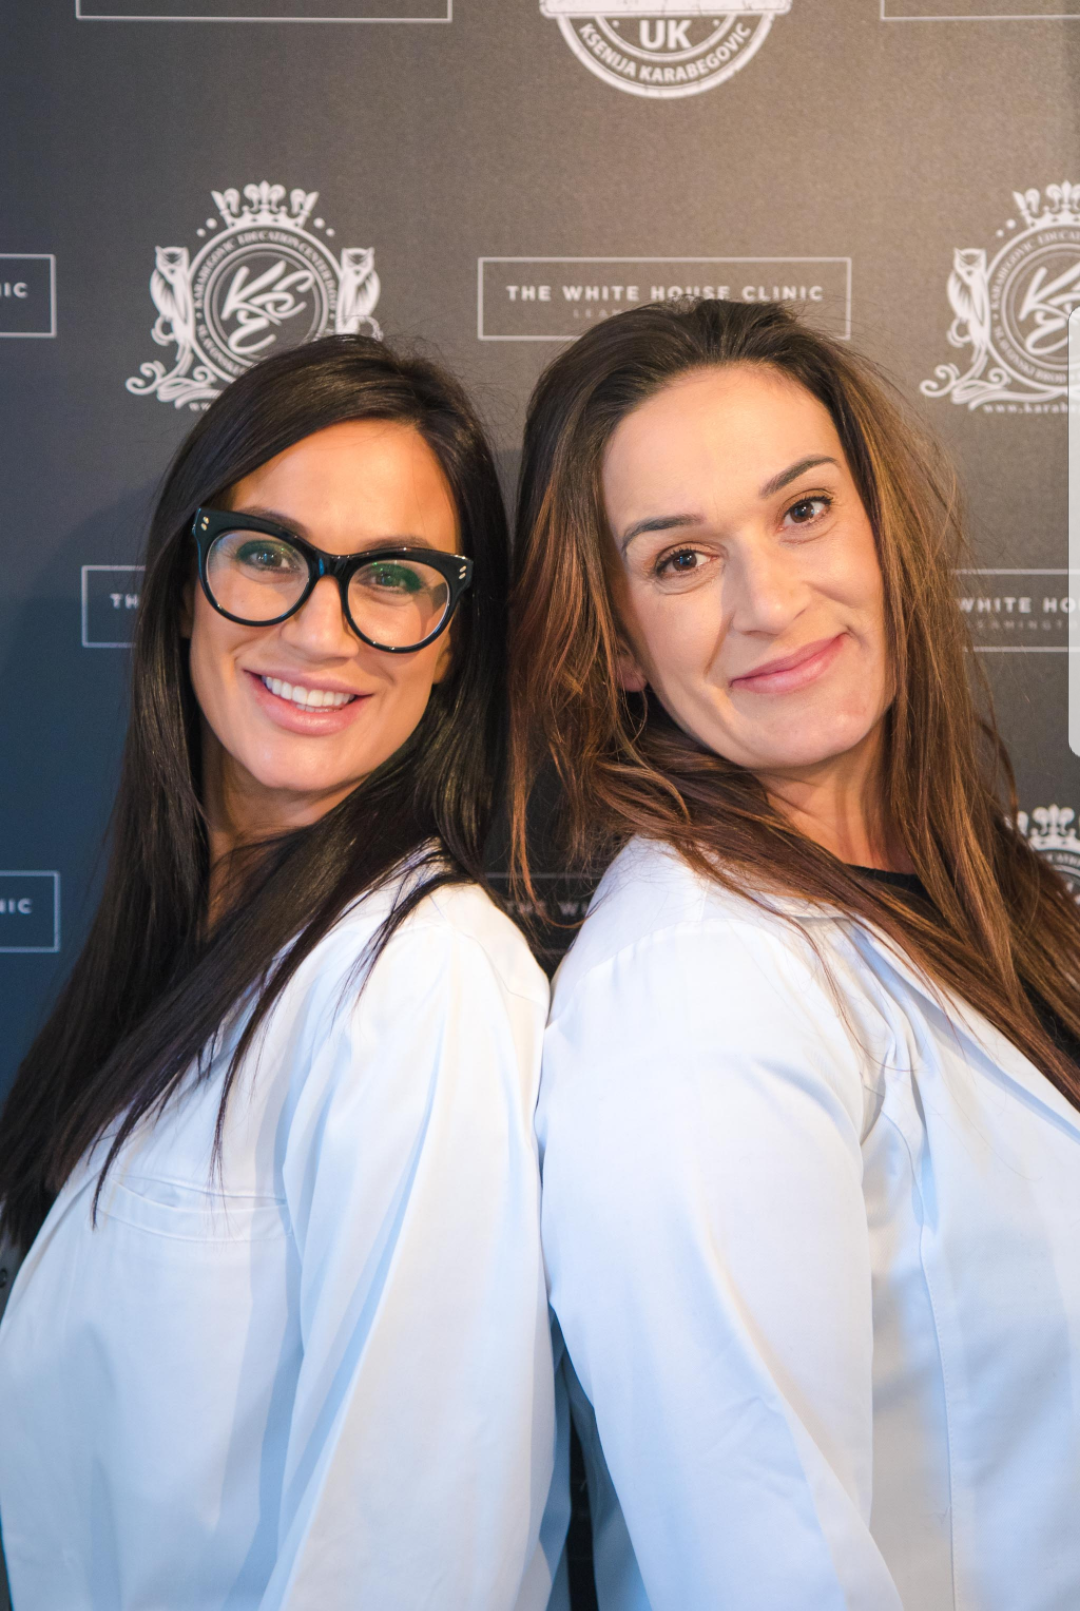 Zara Rouse - Microblading technician (Left)   Zara is the brow queen that is passionate about her work. She cares and listens and will go into great detail making sure all clients have a great experience whilst having their brows done.  Zara has worked in the hair loss for over 10 years specialising in hair transplants, scalps, beard and brows so fully understanding hair pattern. She moved from transplantation to SMPU mainly to work on alopecia clients. Seeing my clients faces with their new brows makes zara love her job.  This is all zara does now and you are in good hands when it comes to brows!!  Due to Zaras level of experience and expertise she will be becoming a brow trainer this year please leave details if interested   Alexandra – Aesthetic Nurse (Right)   Alexandra is highly skilled and recognised throughout the uk for her aesthetic work and hair loss background, she is our in-house nurse that specialises in facial fillers, with her professional knowledge she will give you realistic and honest opinion on what is best and suitable for each client.  Within the white house clinic, she has her own private aesthetic clinical room where all treatment take place directly with her  Alexandra is very approachable and friendly who will always advice a natural look  All bookings with Alexandra are done through the white house clinic.